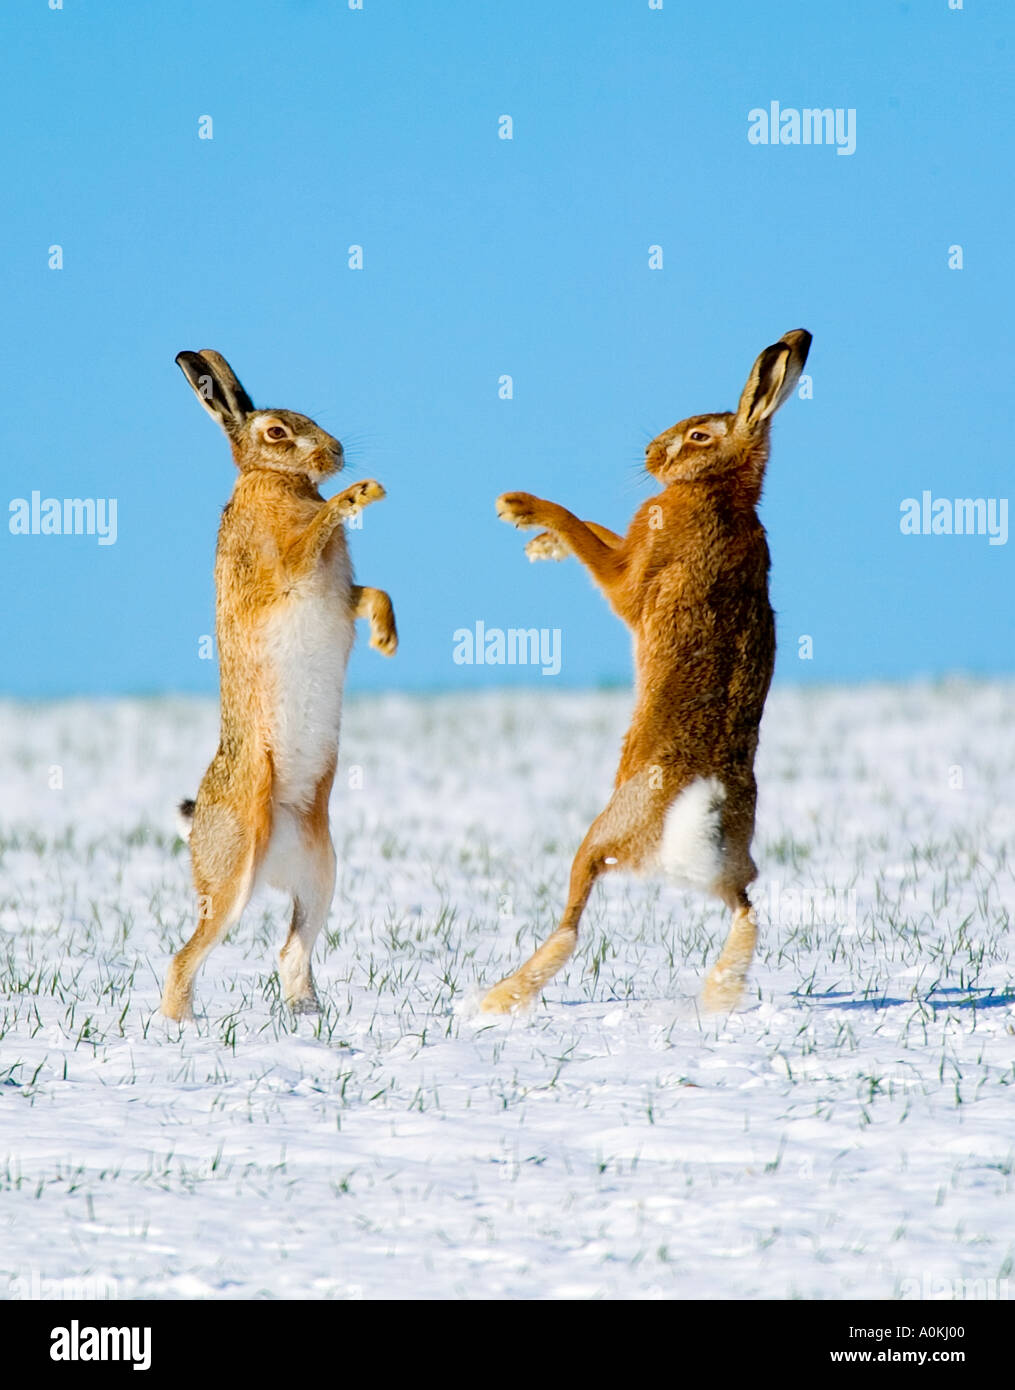 Lièvre brun Lepus europaeus Boxe en neige avec ciel bleu therfield hertfordshire Photo Stock